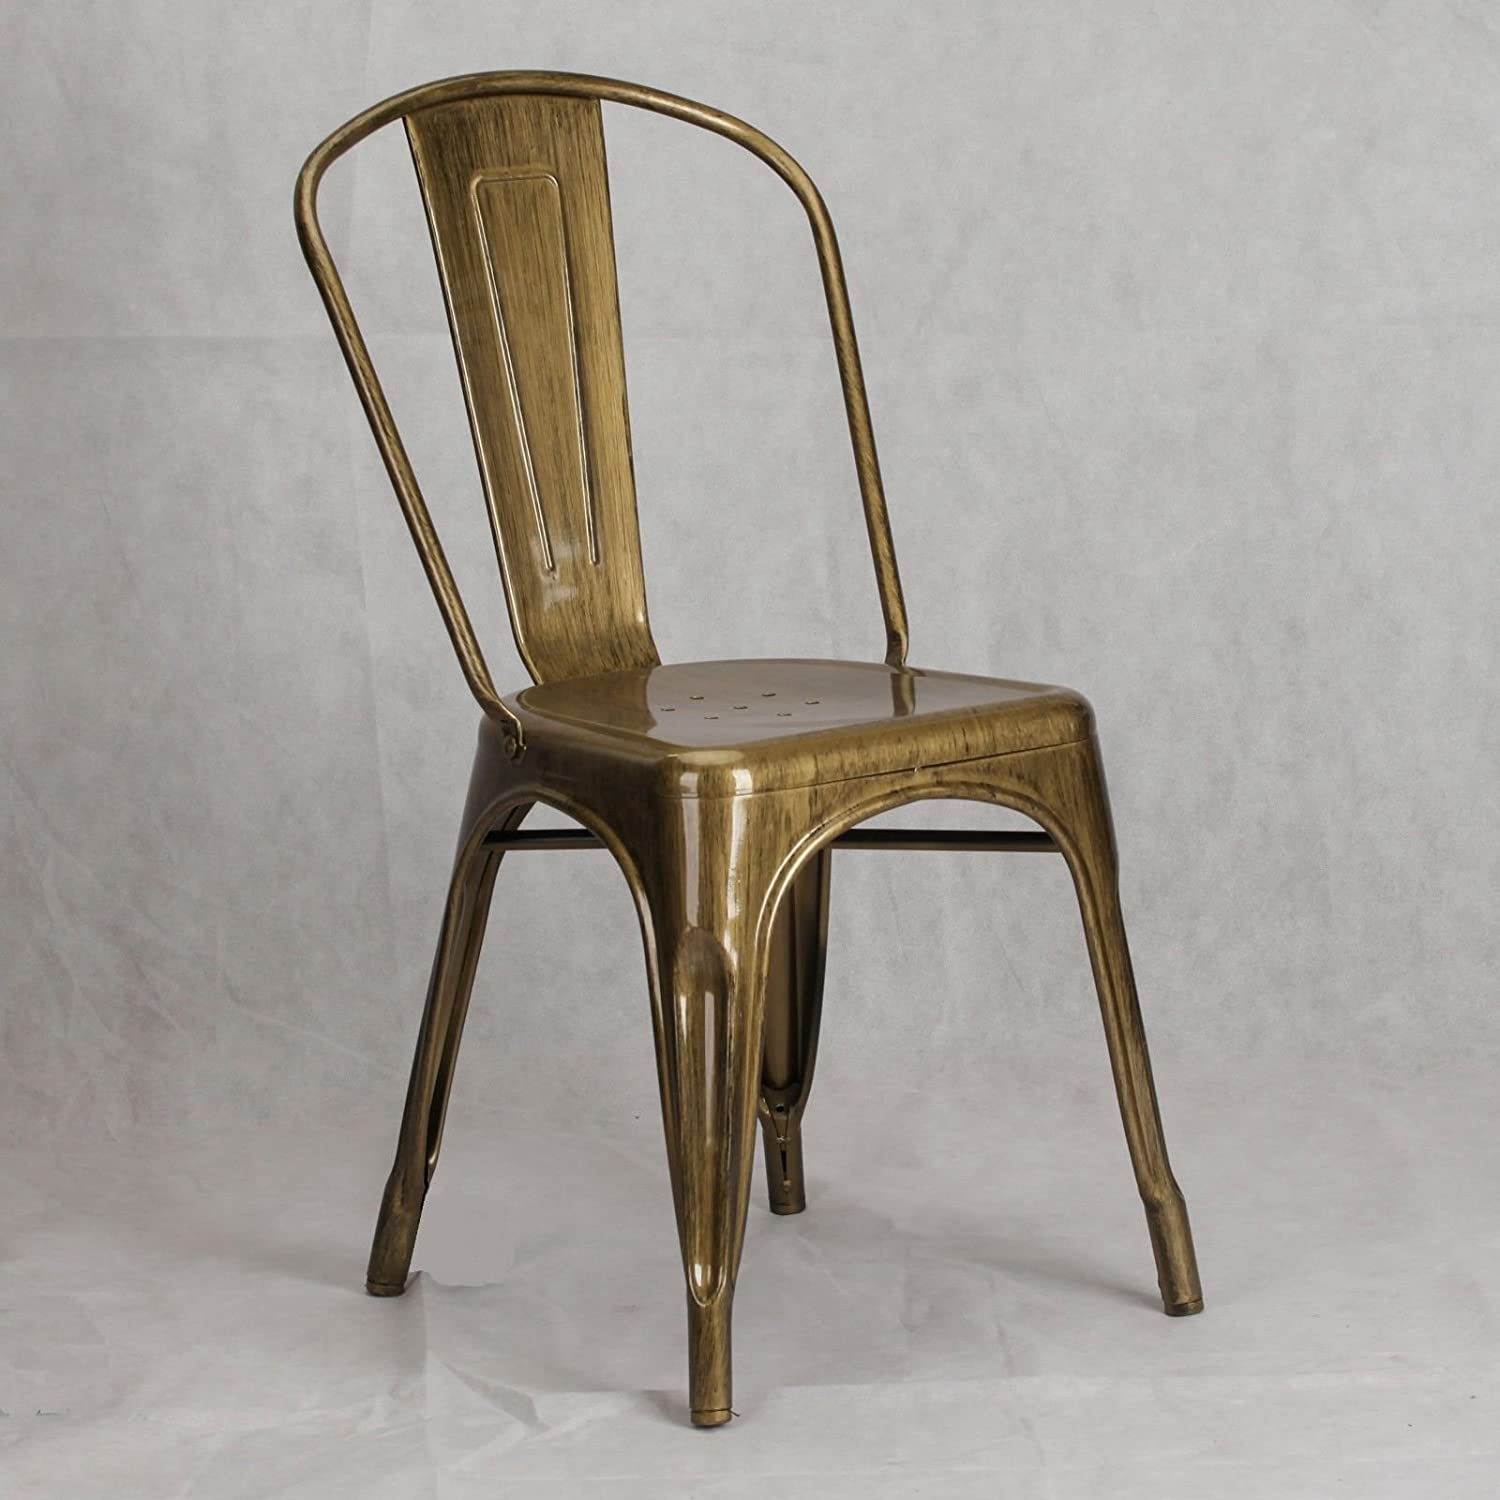 LMC TOLIX INSPIRED METAL DINING CHAIR BRASS GOLD INDUSTRIAL CAFE STACKABLE SEAT